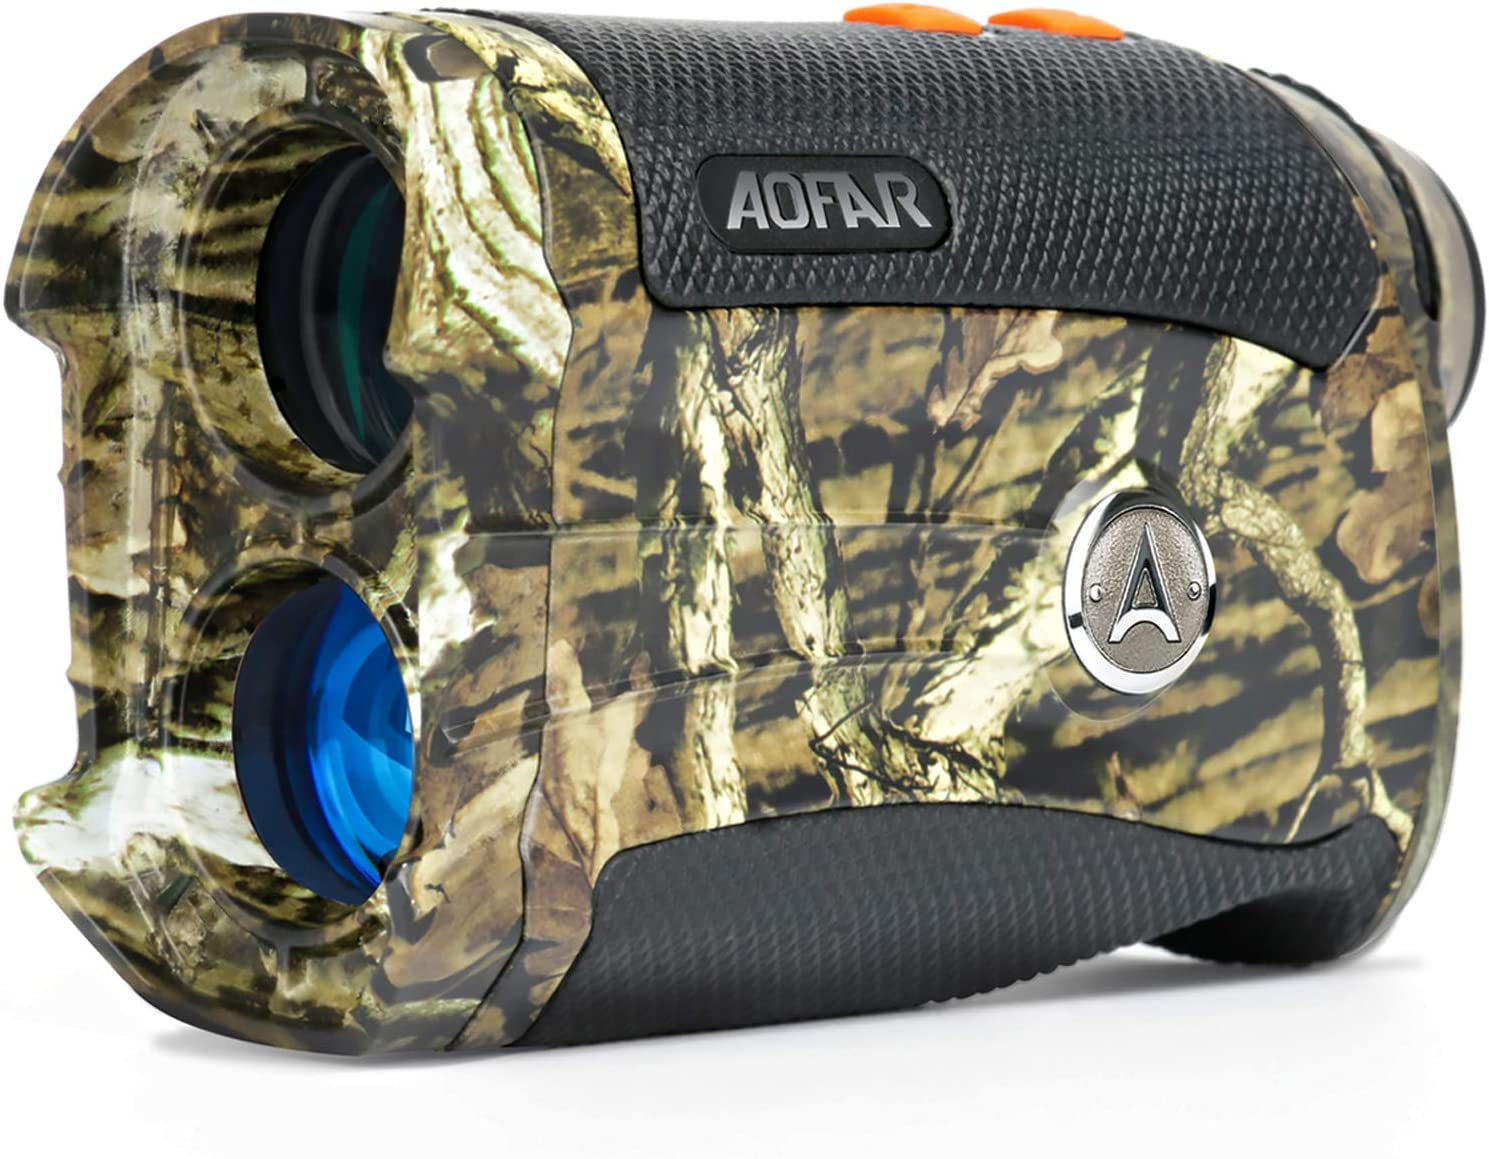 AOFAR Range Finder for Hunting Archery H2 600 Yards Shooting Wild Waterproof Coma Rangefinder with Angle and Horizontal Distance, 6X 25mm, Range and Bow Mode, Free Battery Gift Package